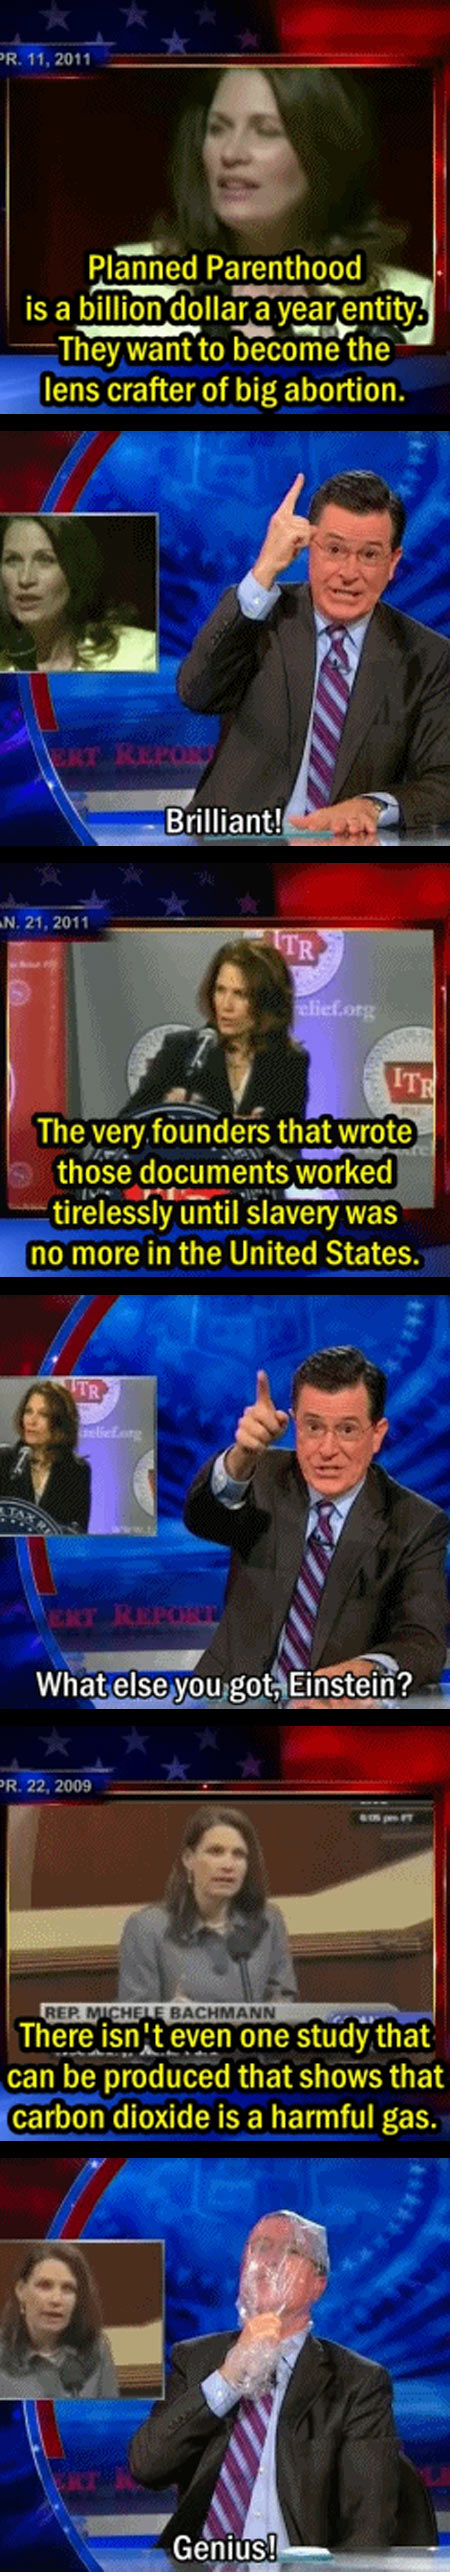 funny-Stephen-Colbert-Michele-Bachman-Obamacare